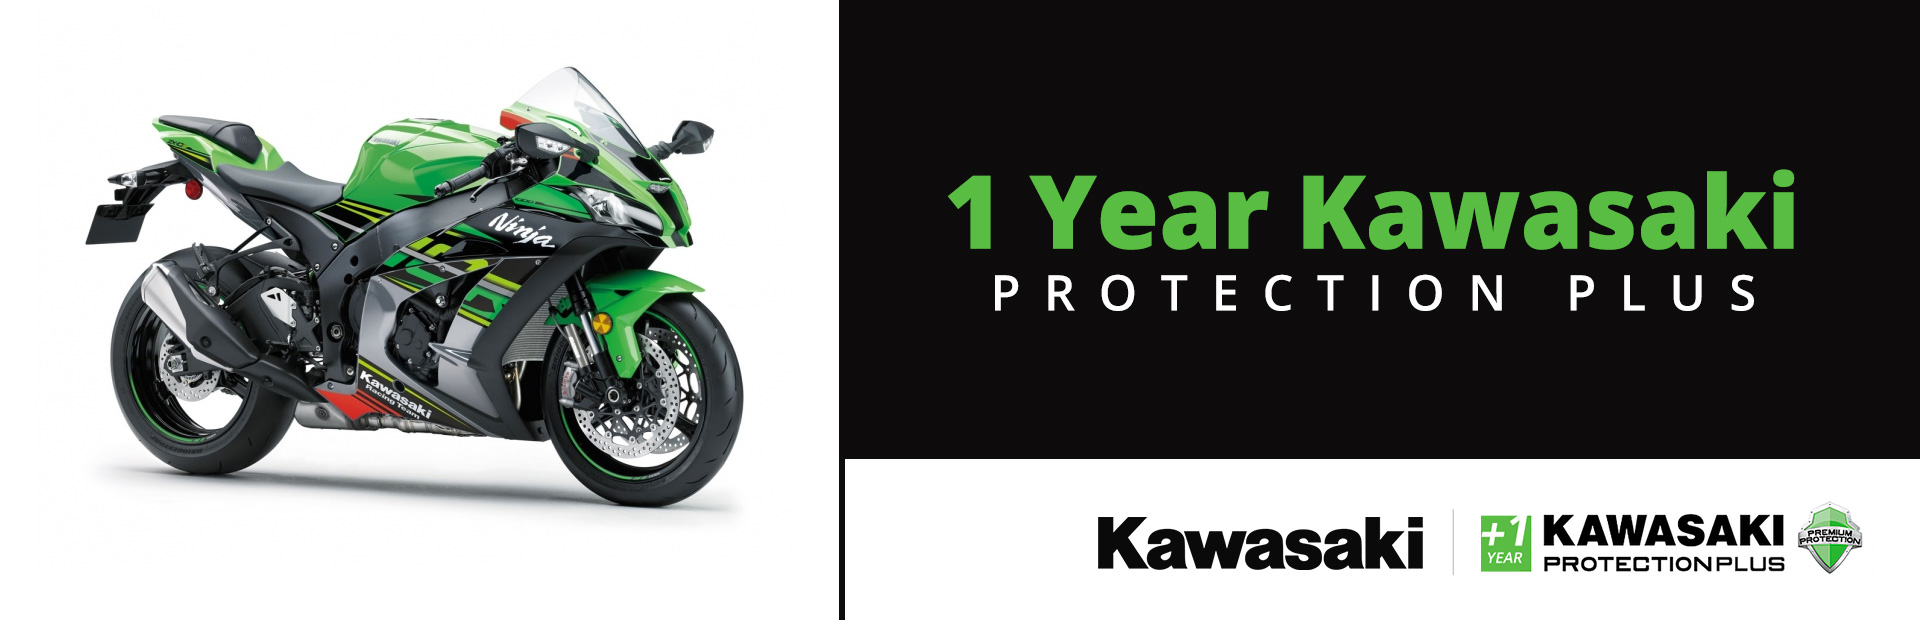 Kawasaki: 1 Year Kawasaki Protection Plus